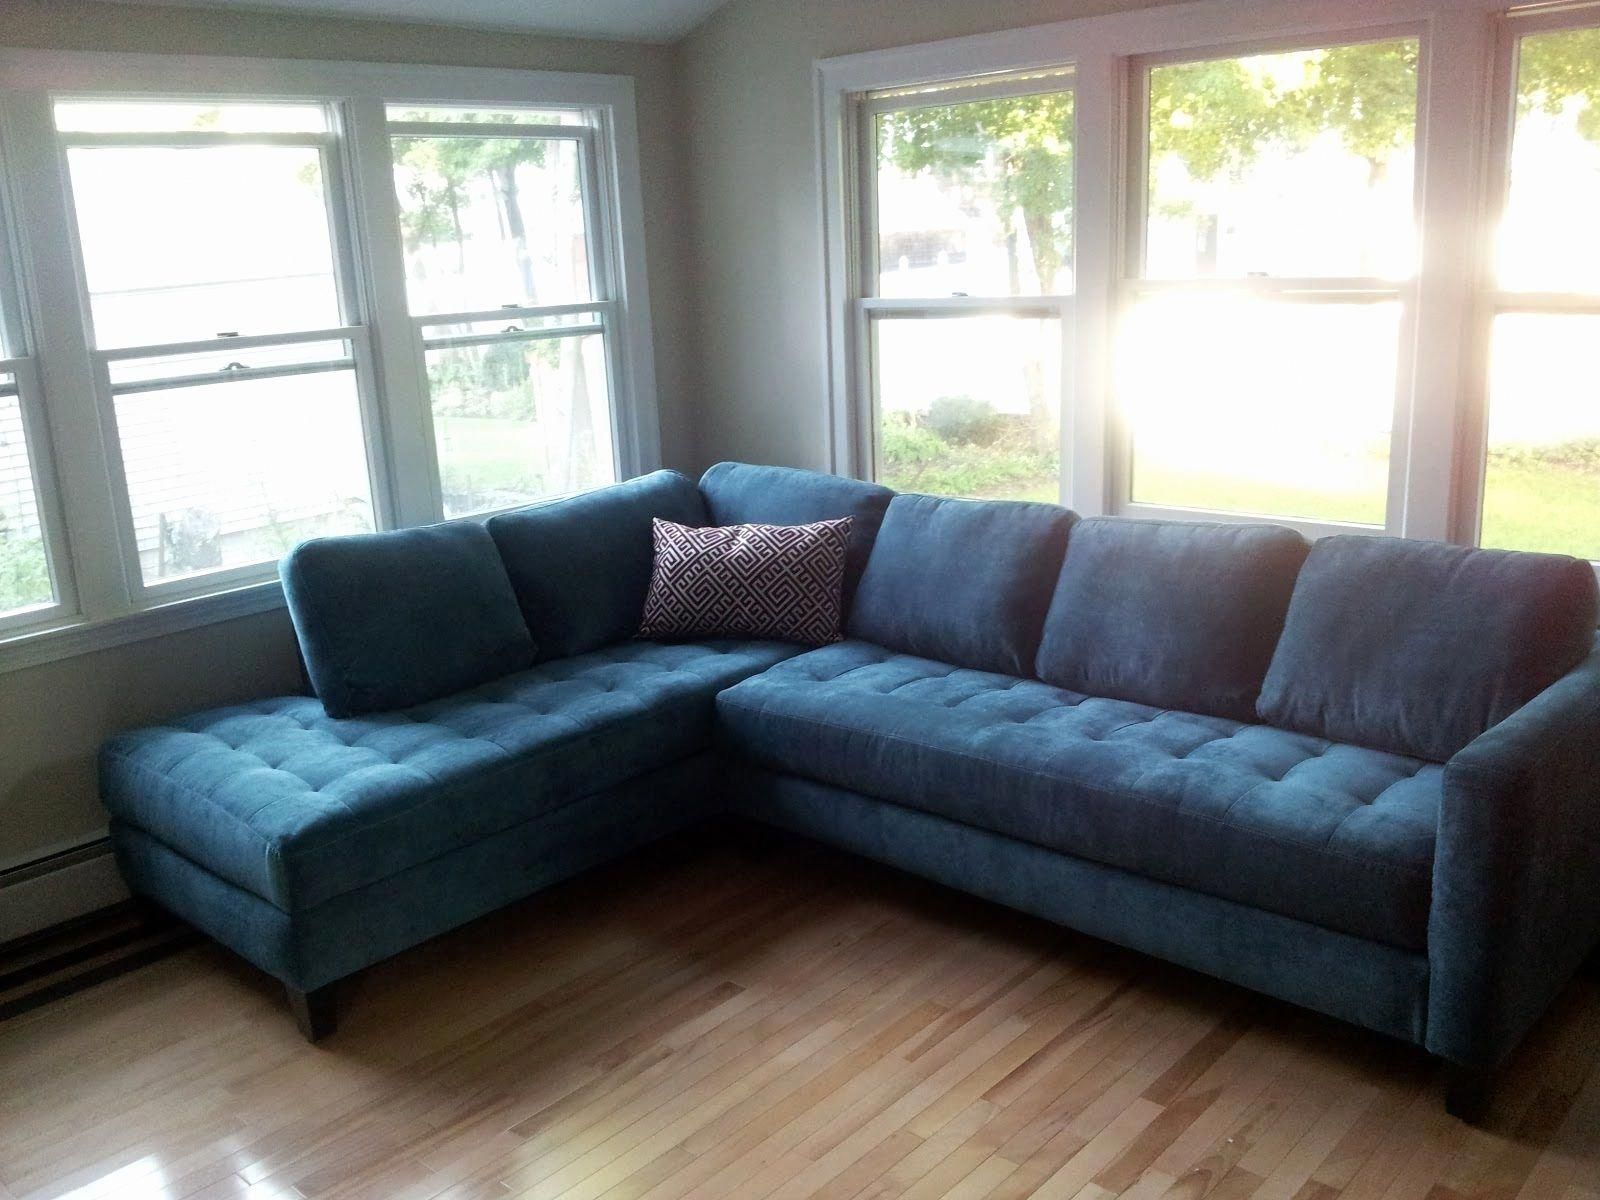 Fresh Navy Blue Sectional Sofa Pictures Navy Blue Sectional Sofa Best Of Blue Sleeper Blue Sofas Living Room Velvet Living Room Furniture Blue Grey Living Room